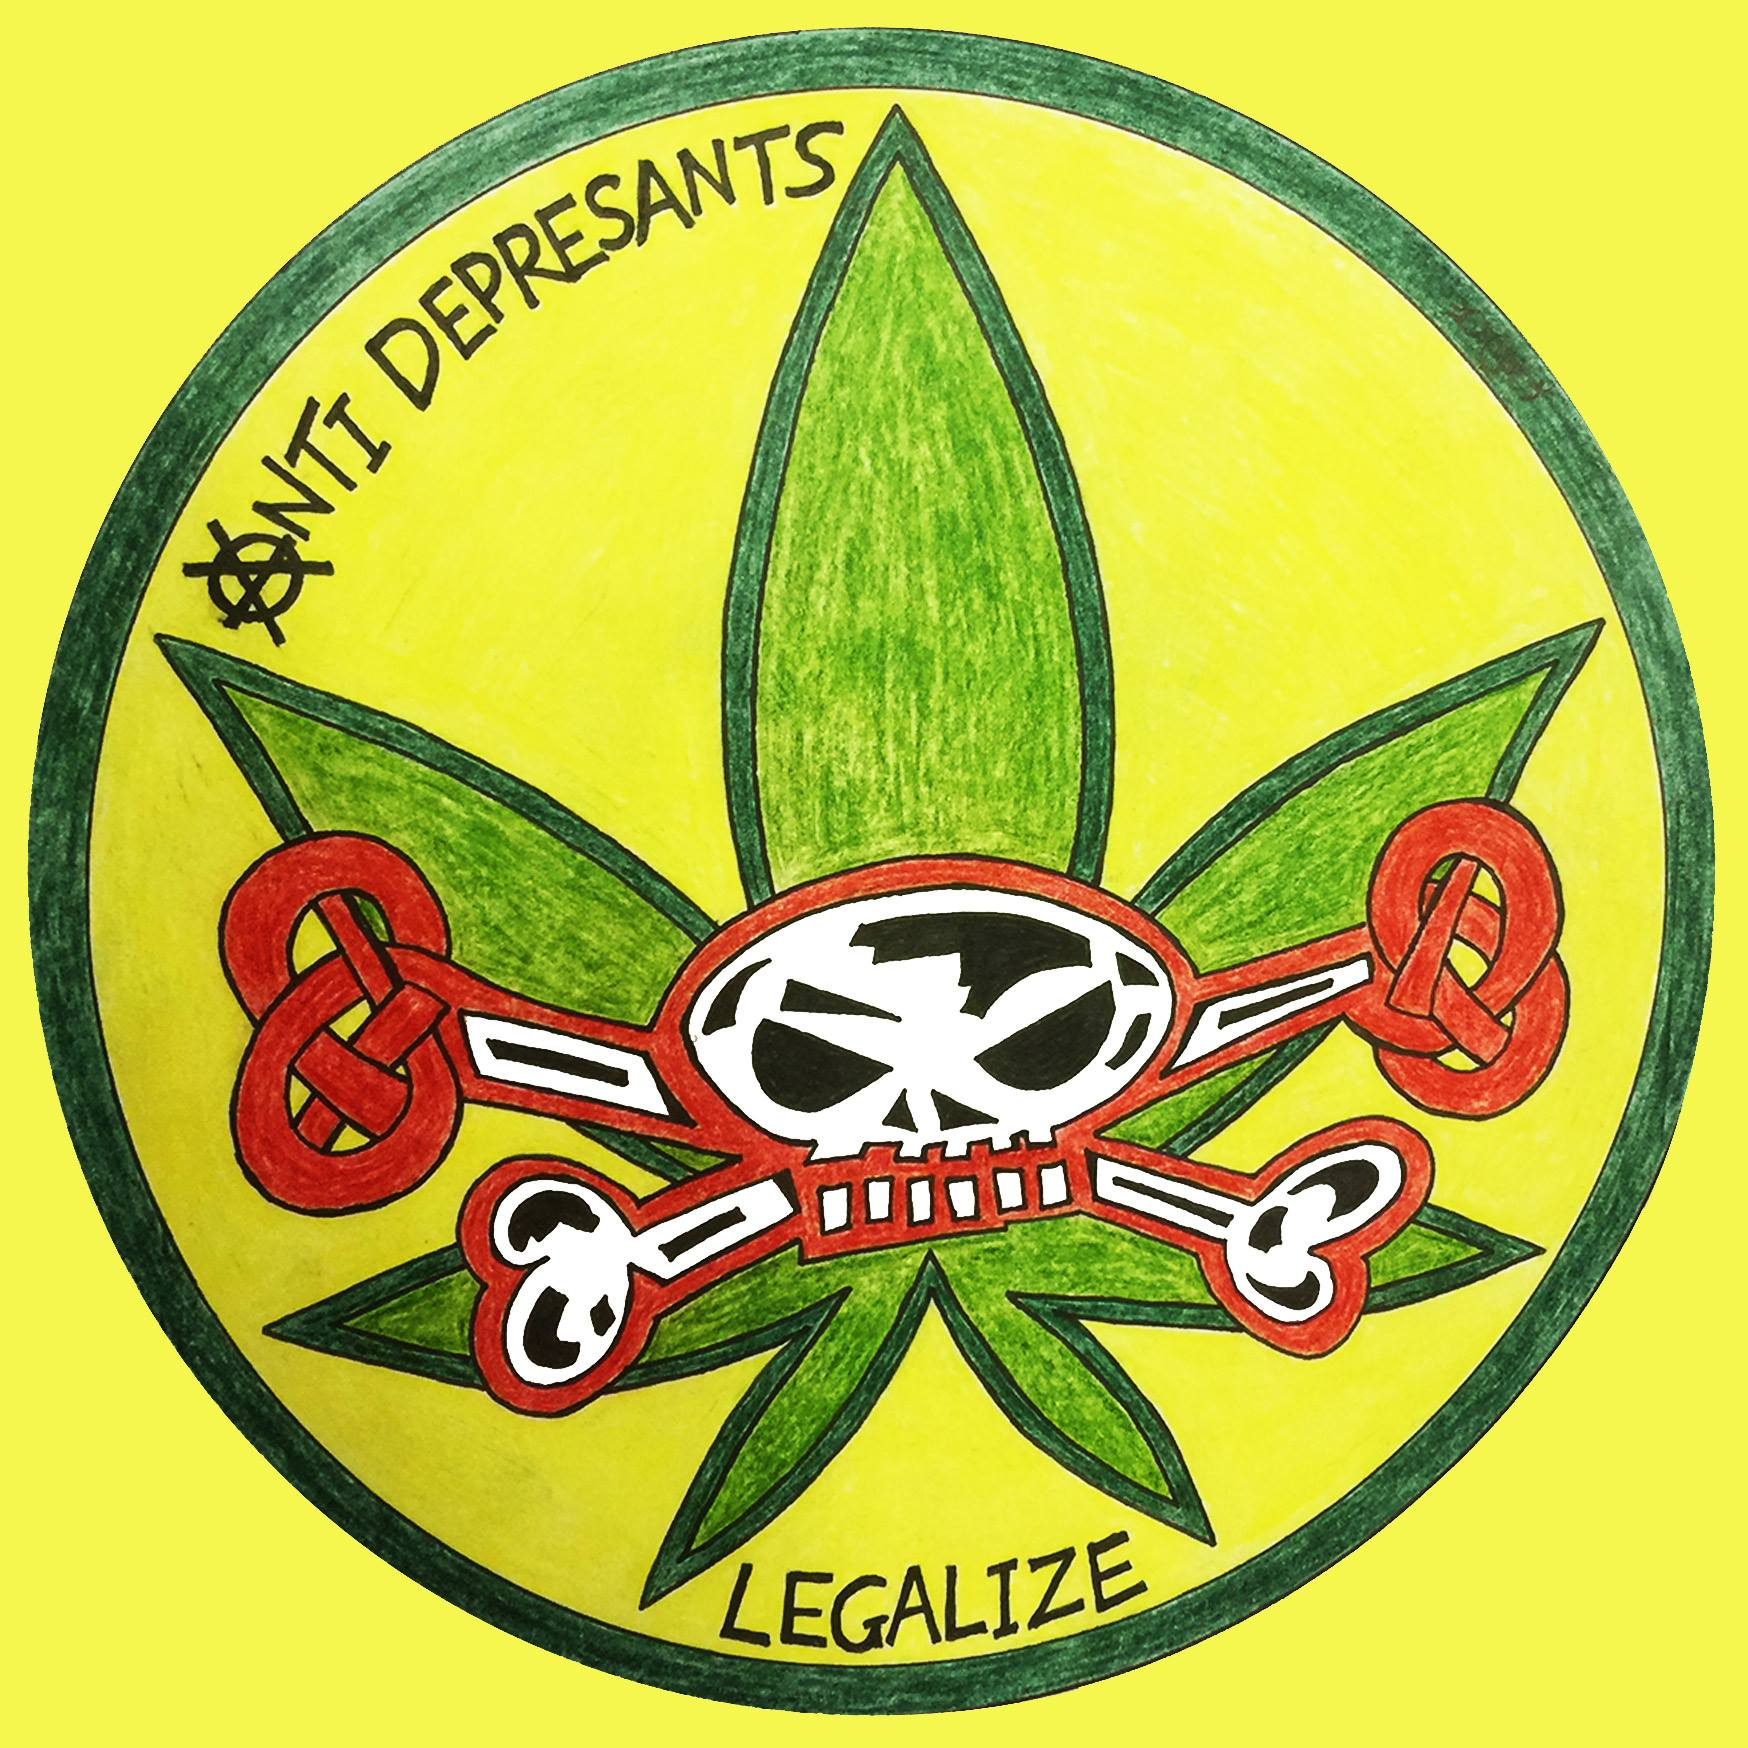 Anti Depresants – Legalize (Official Video)